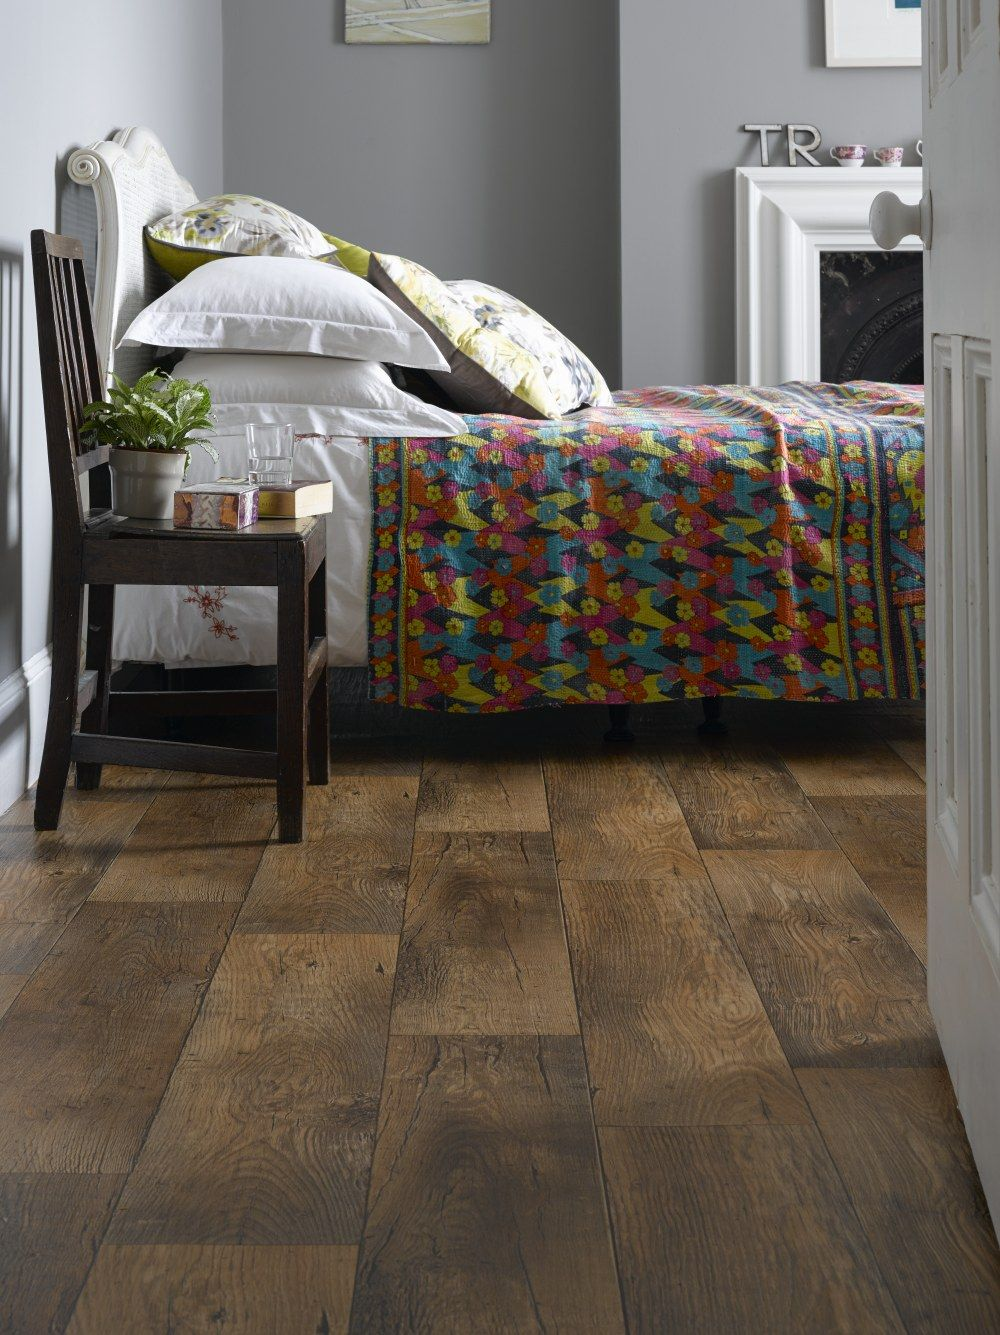 A Modern Bedroom With Wood Effect Vinyl Flooring And Patterned Bed Covers Bedroom Comfy Bed Floor Carpetr Vinyl Flooring Stylish Flooring Bedroom Flooring